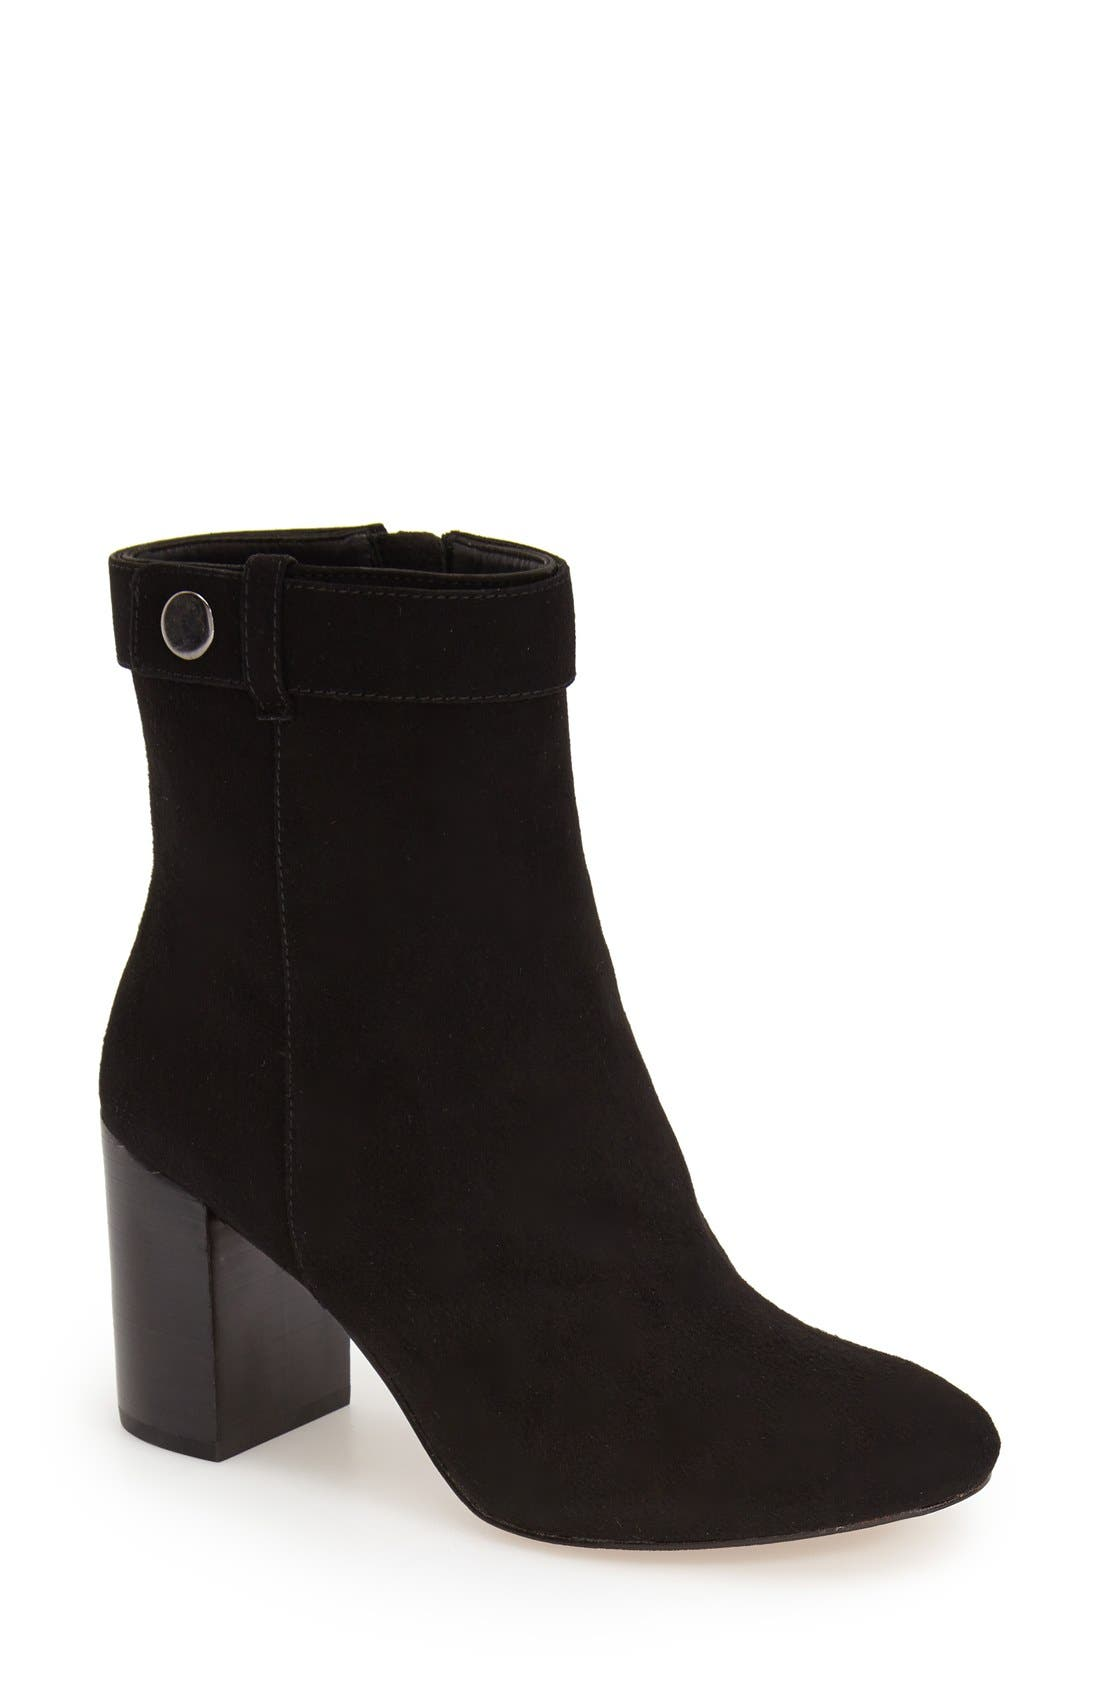 Alternate Image 1 Selected - Pour la Victoire 'Danya' Bootie (Women)